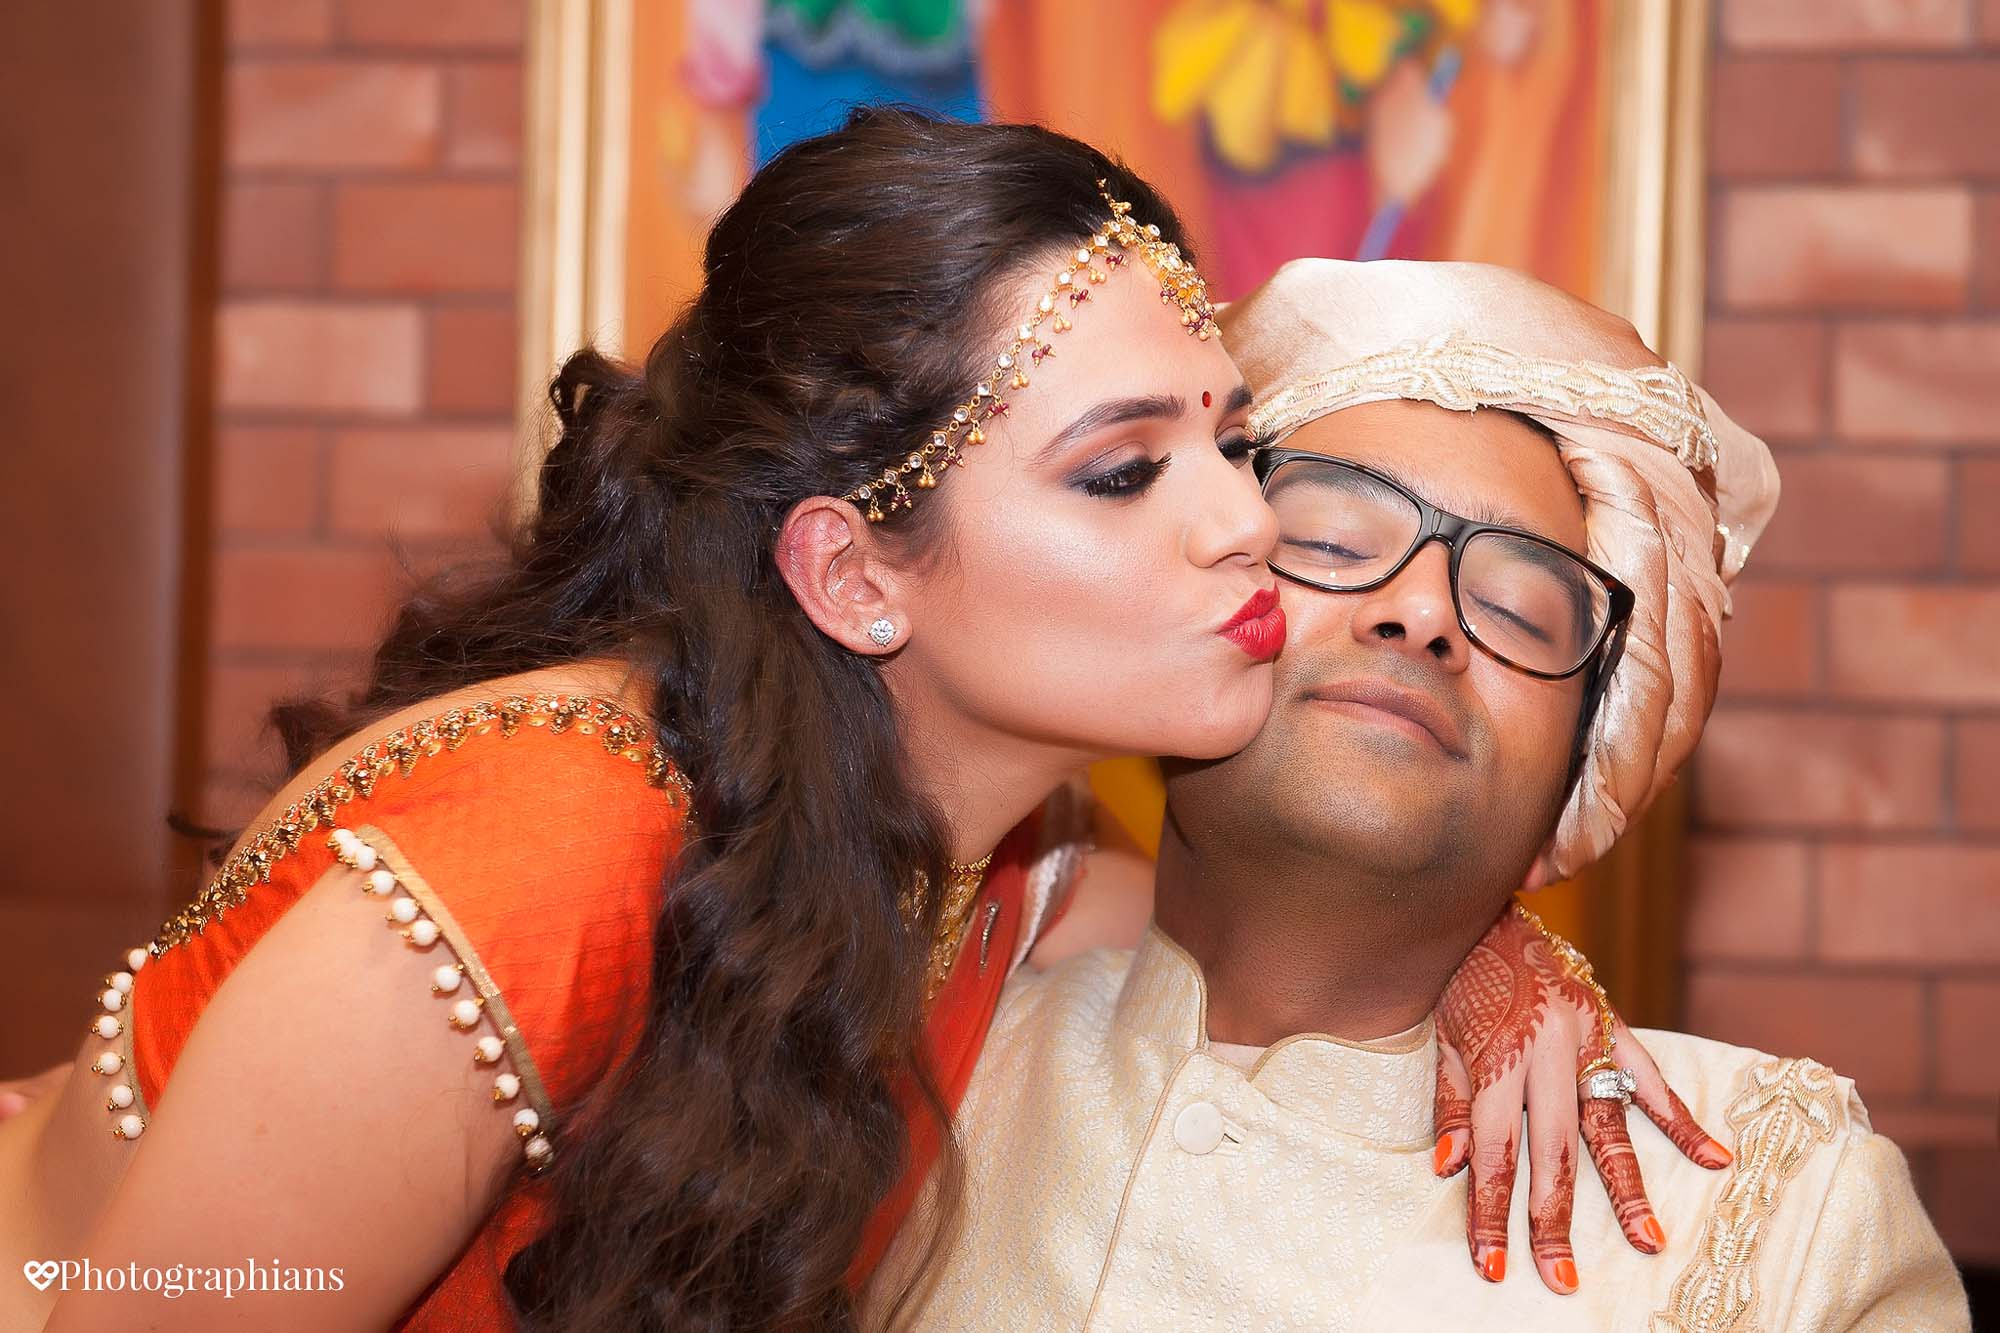 Punjabi_Marwari_Wedding_Kolkata_Photographians_-VIDHI-166